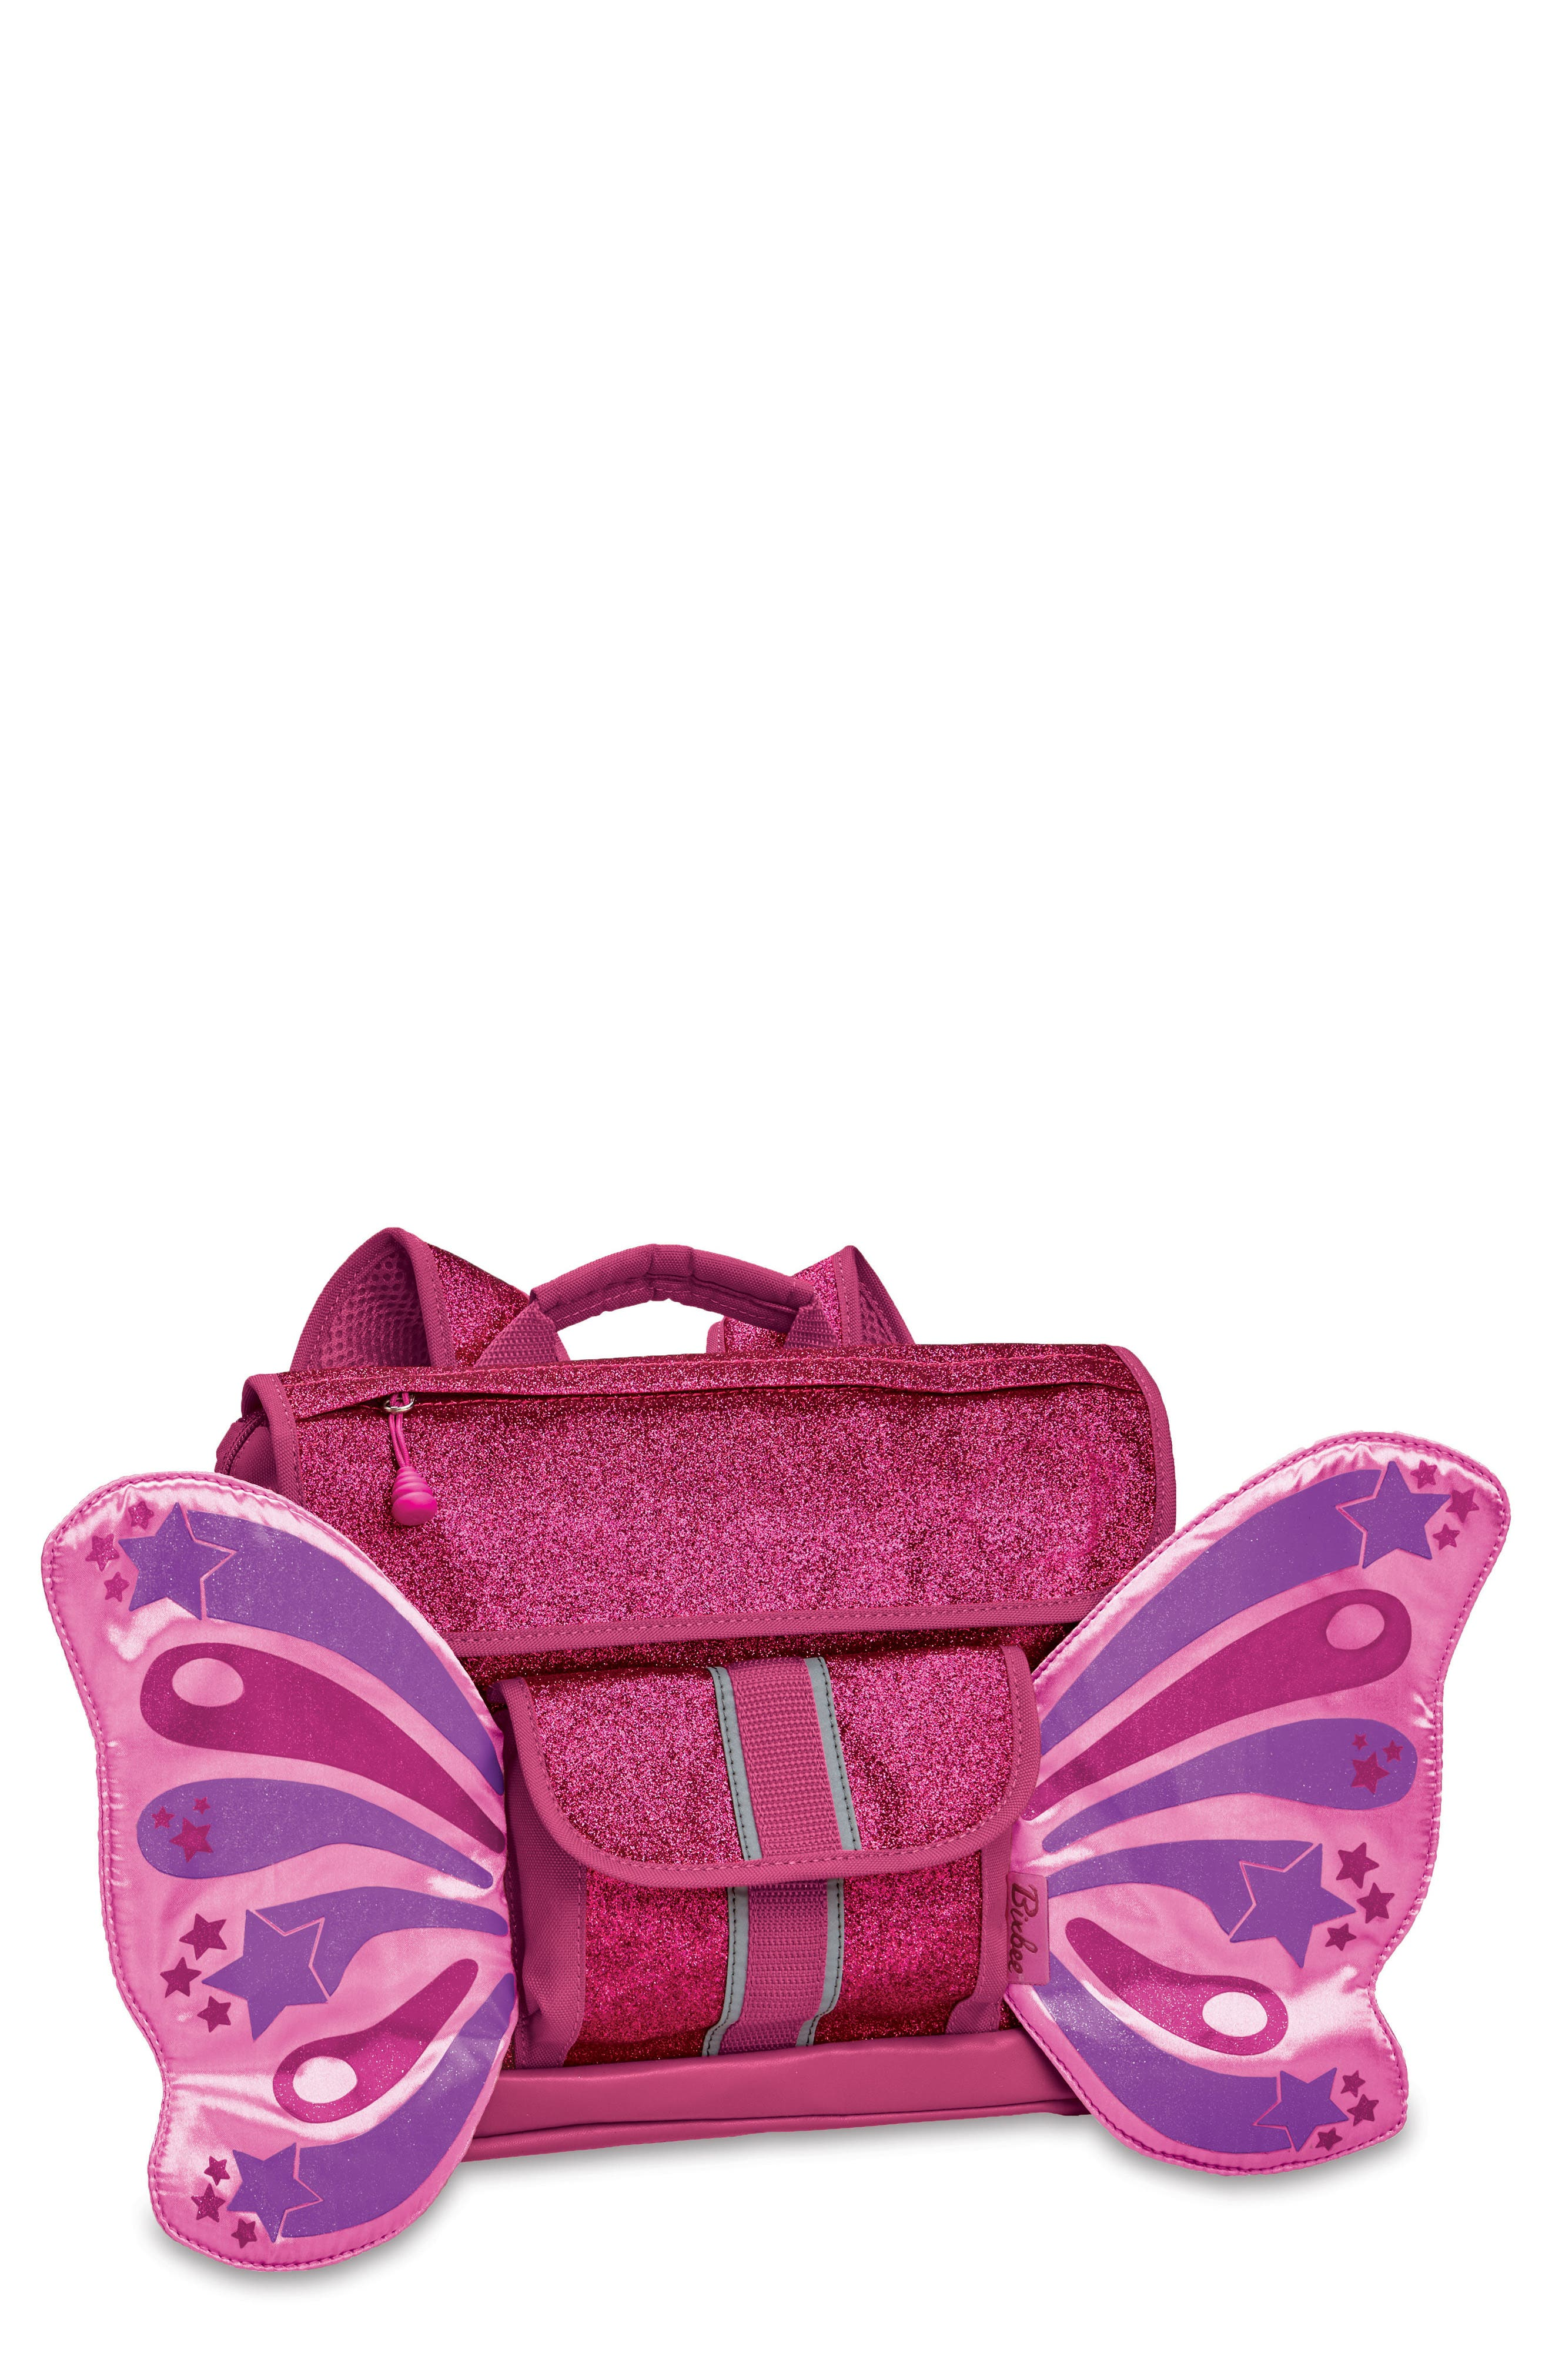 Main Image - Bixbee Sparkalicious Butterflyer Backpack (Kids)